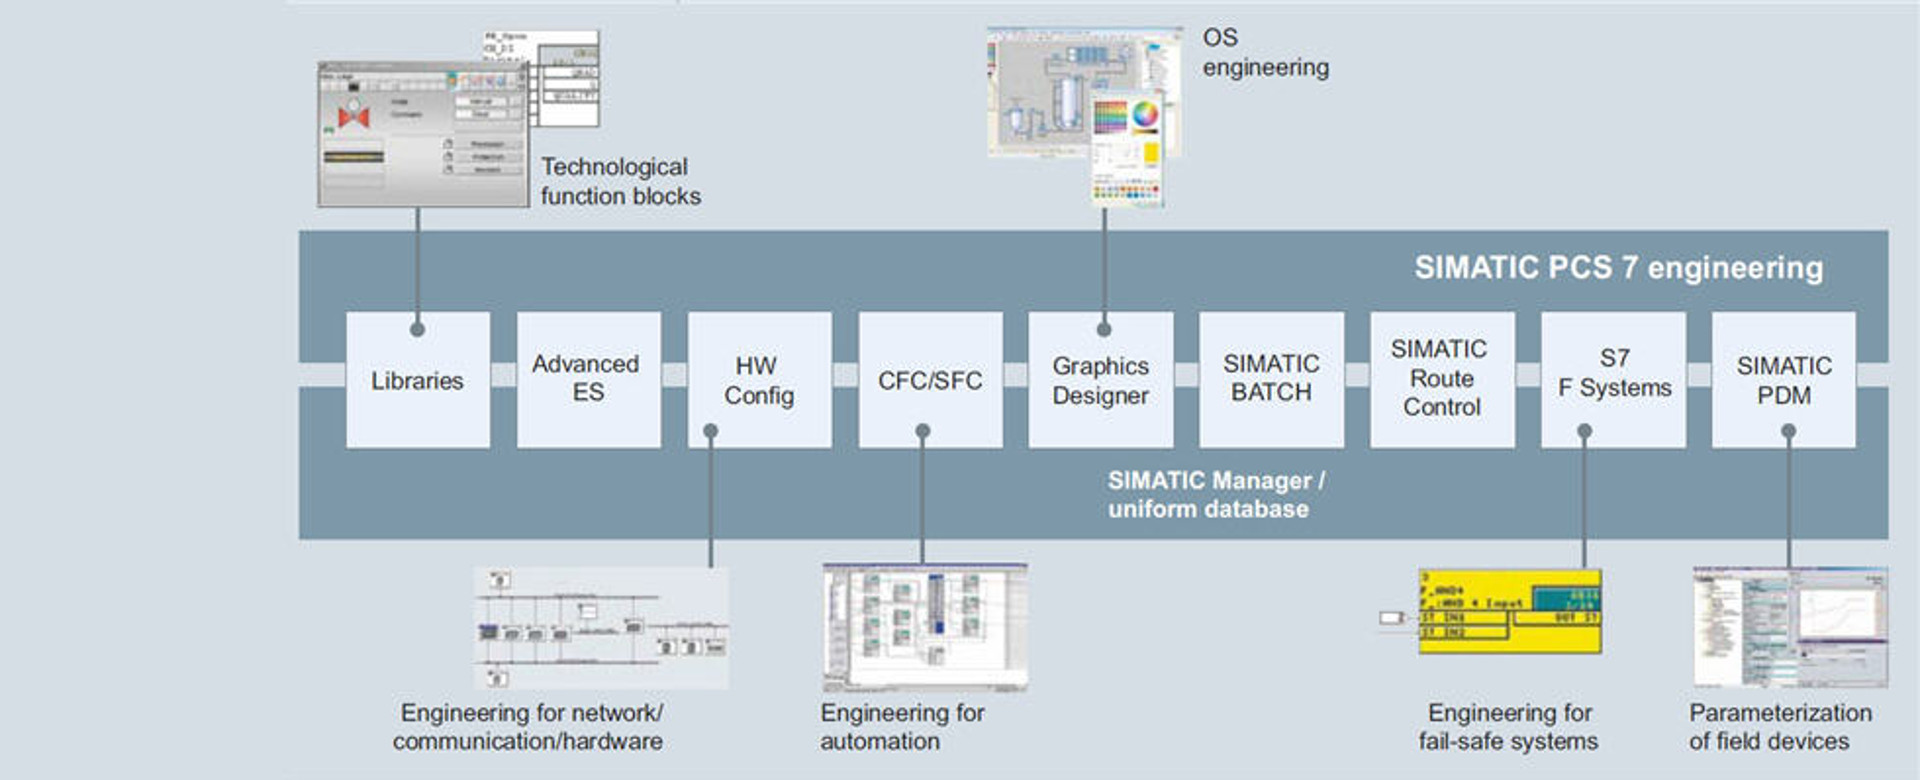 SIMATIC PCS 7 Engineering Toolset - SIMATIC PCS 7 BRAUMAT Features